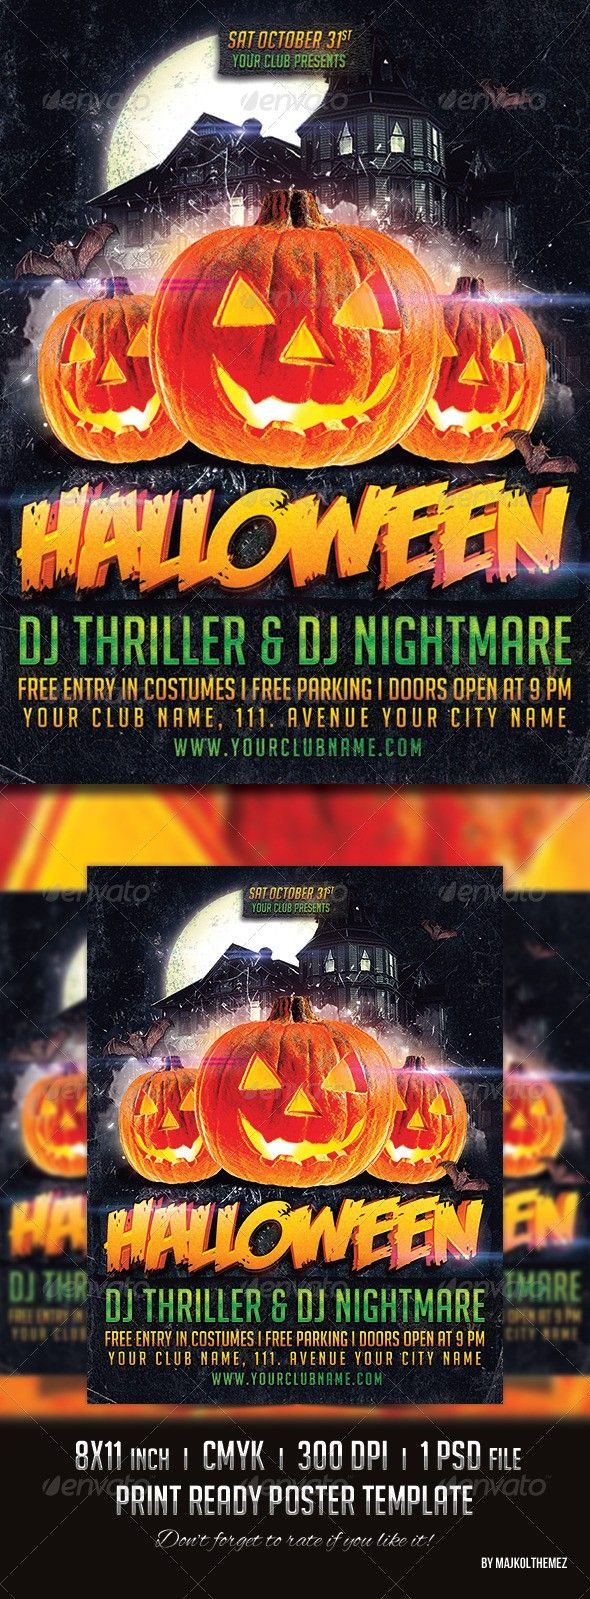 club flyer costume flyer costume poster full moon halloween